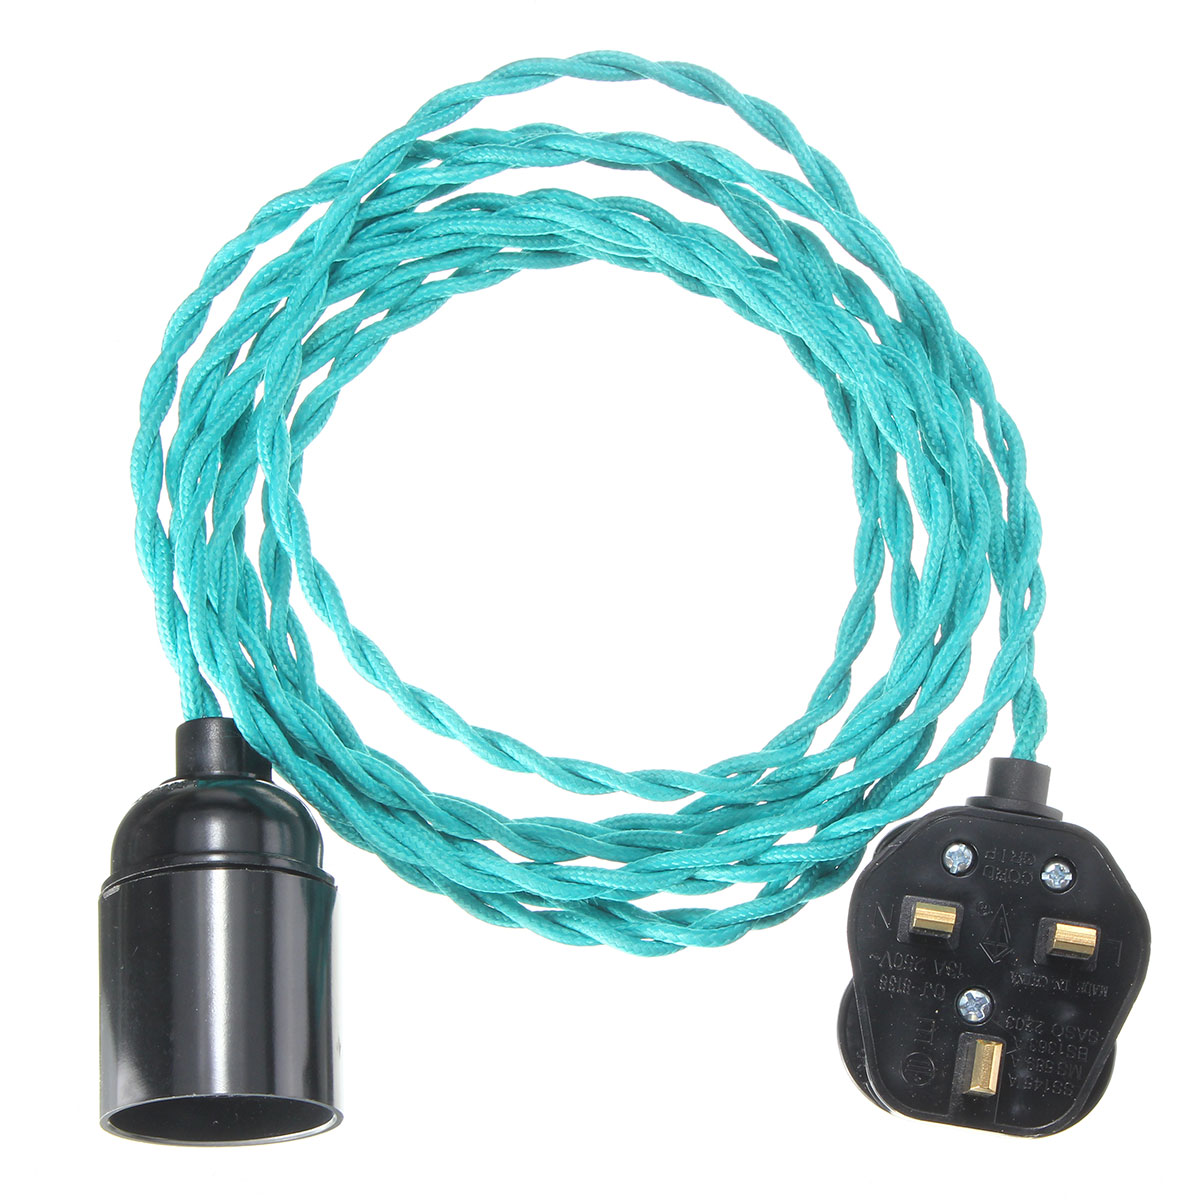 4M E27 Vintage Twisted Fabric Cable UK Plug In Pendant Lamp Light ...